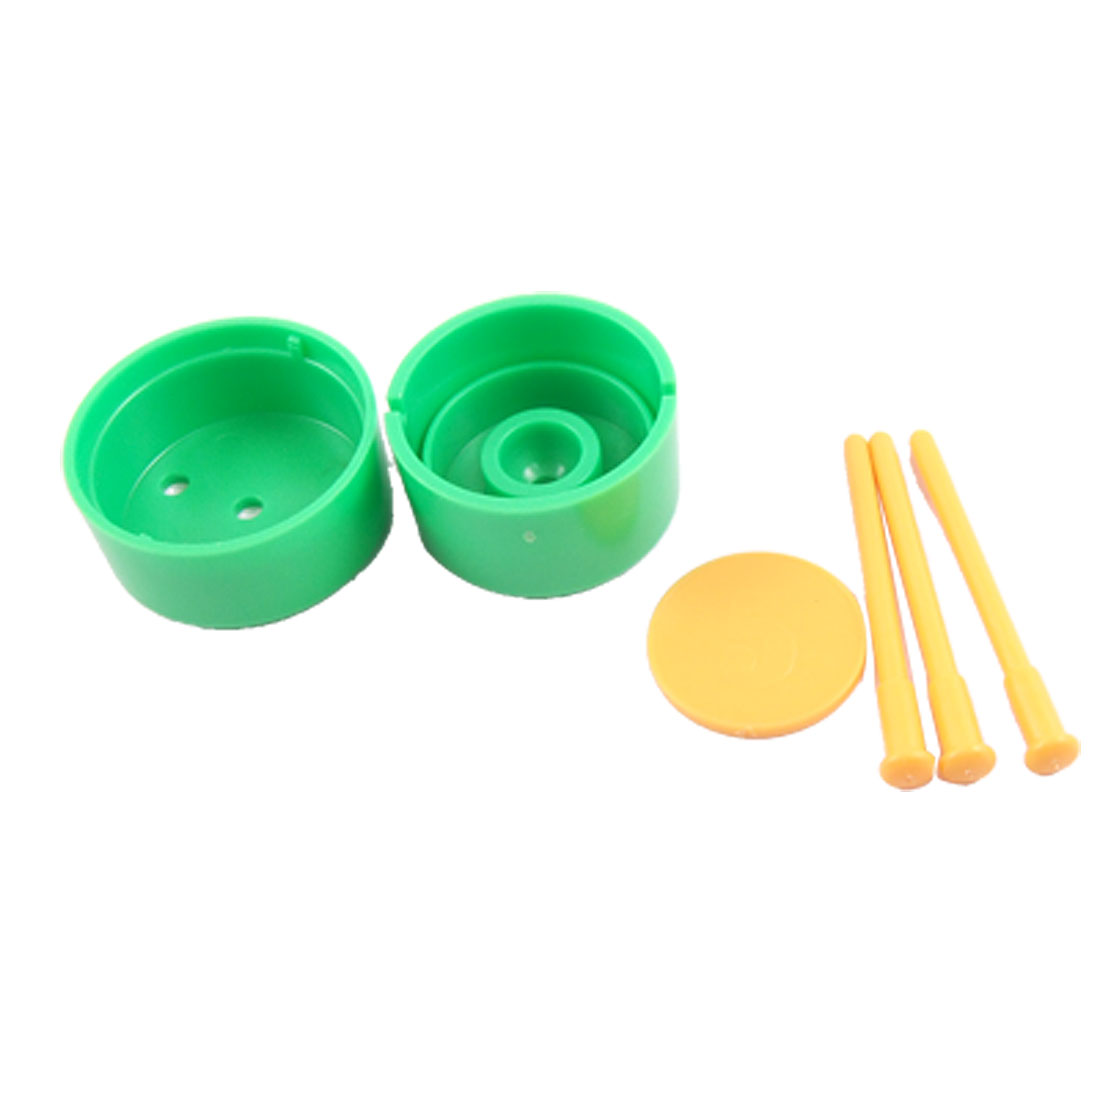 2 Pack Magical Green Plastic Box Yellow Nails Thru Coin Props